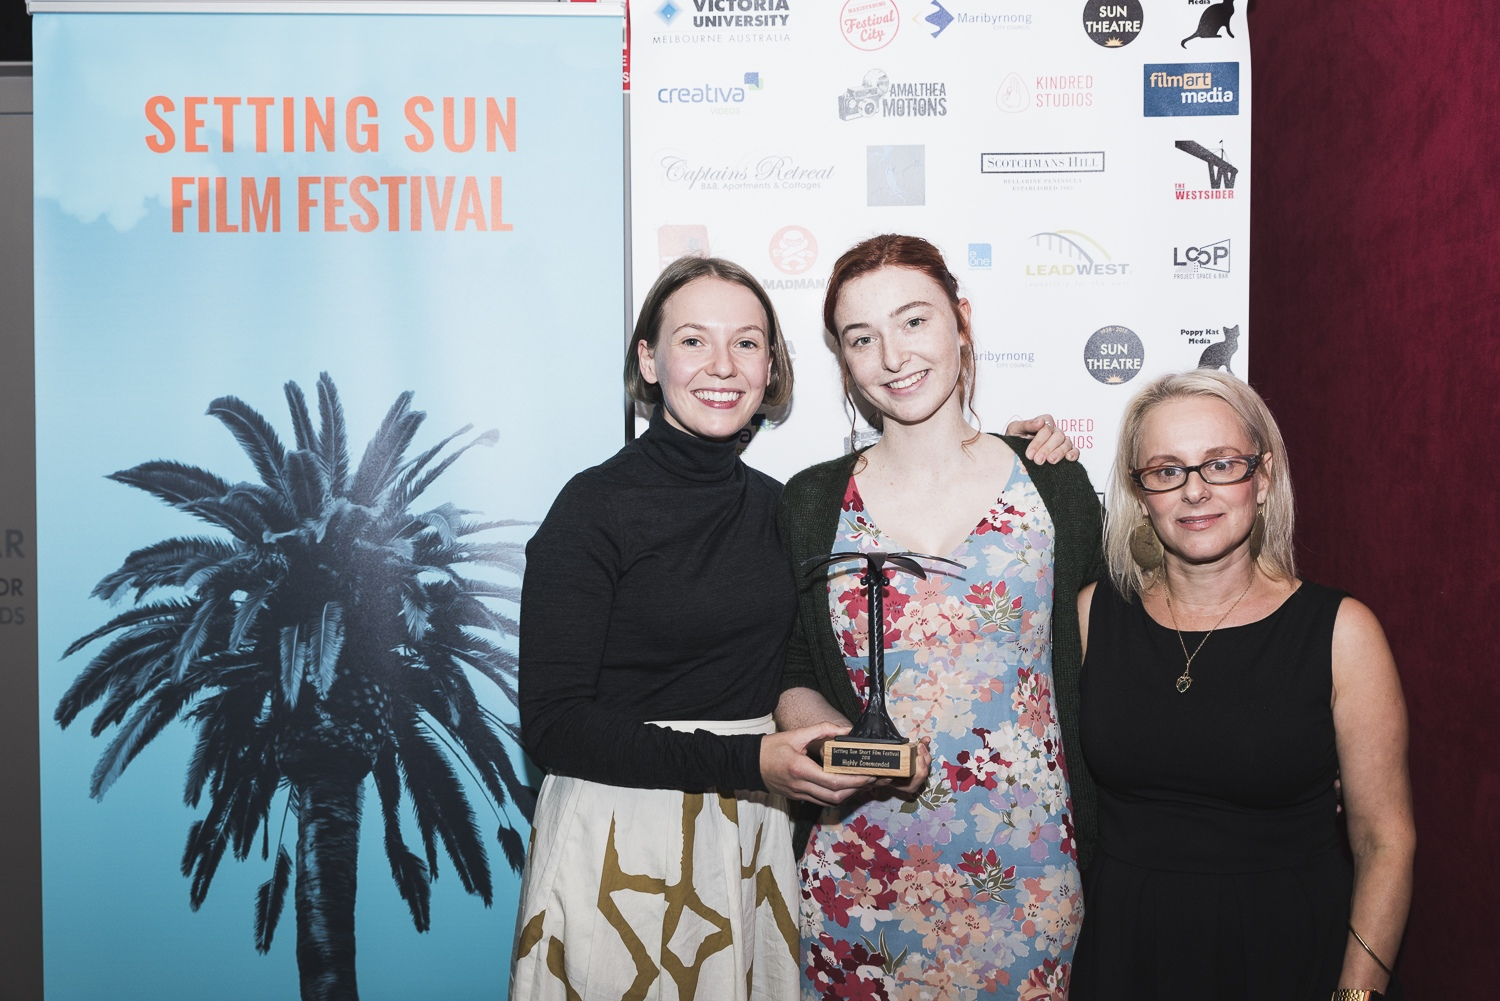 Director Nina Buxton,  Actress Bethany Whitmore and Festival Director Anna Bourozikas